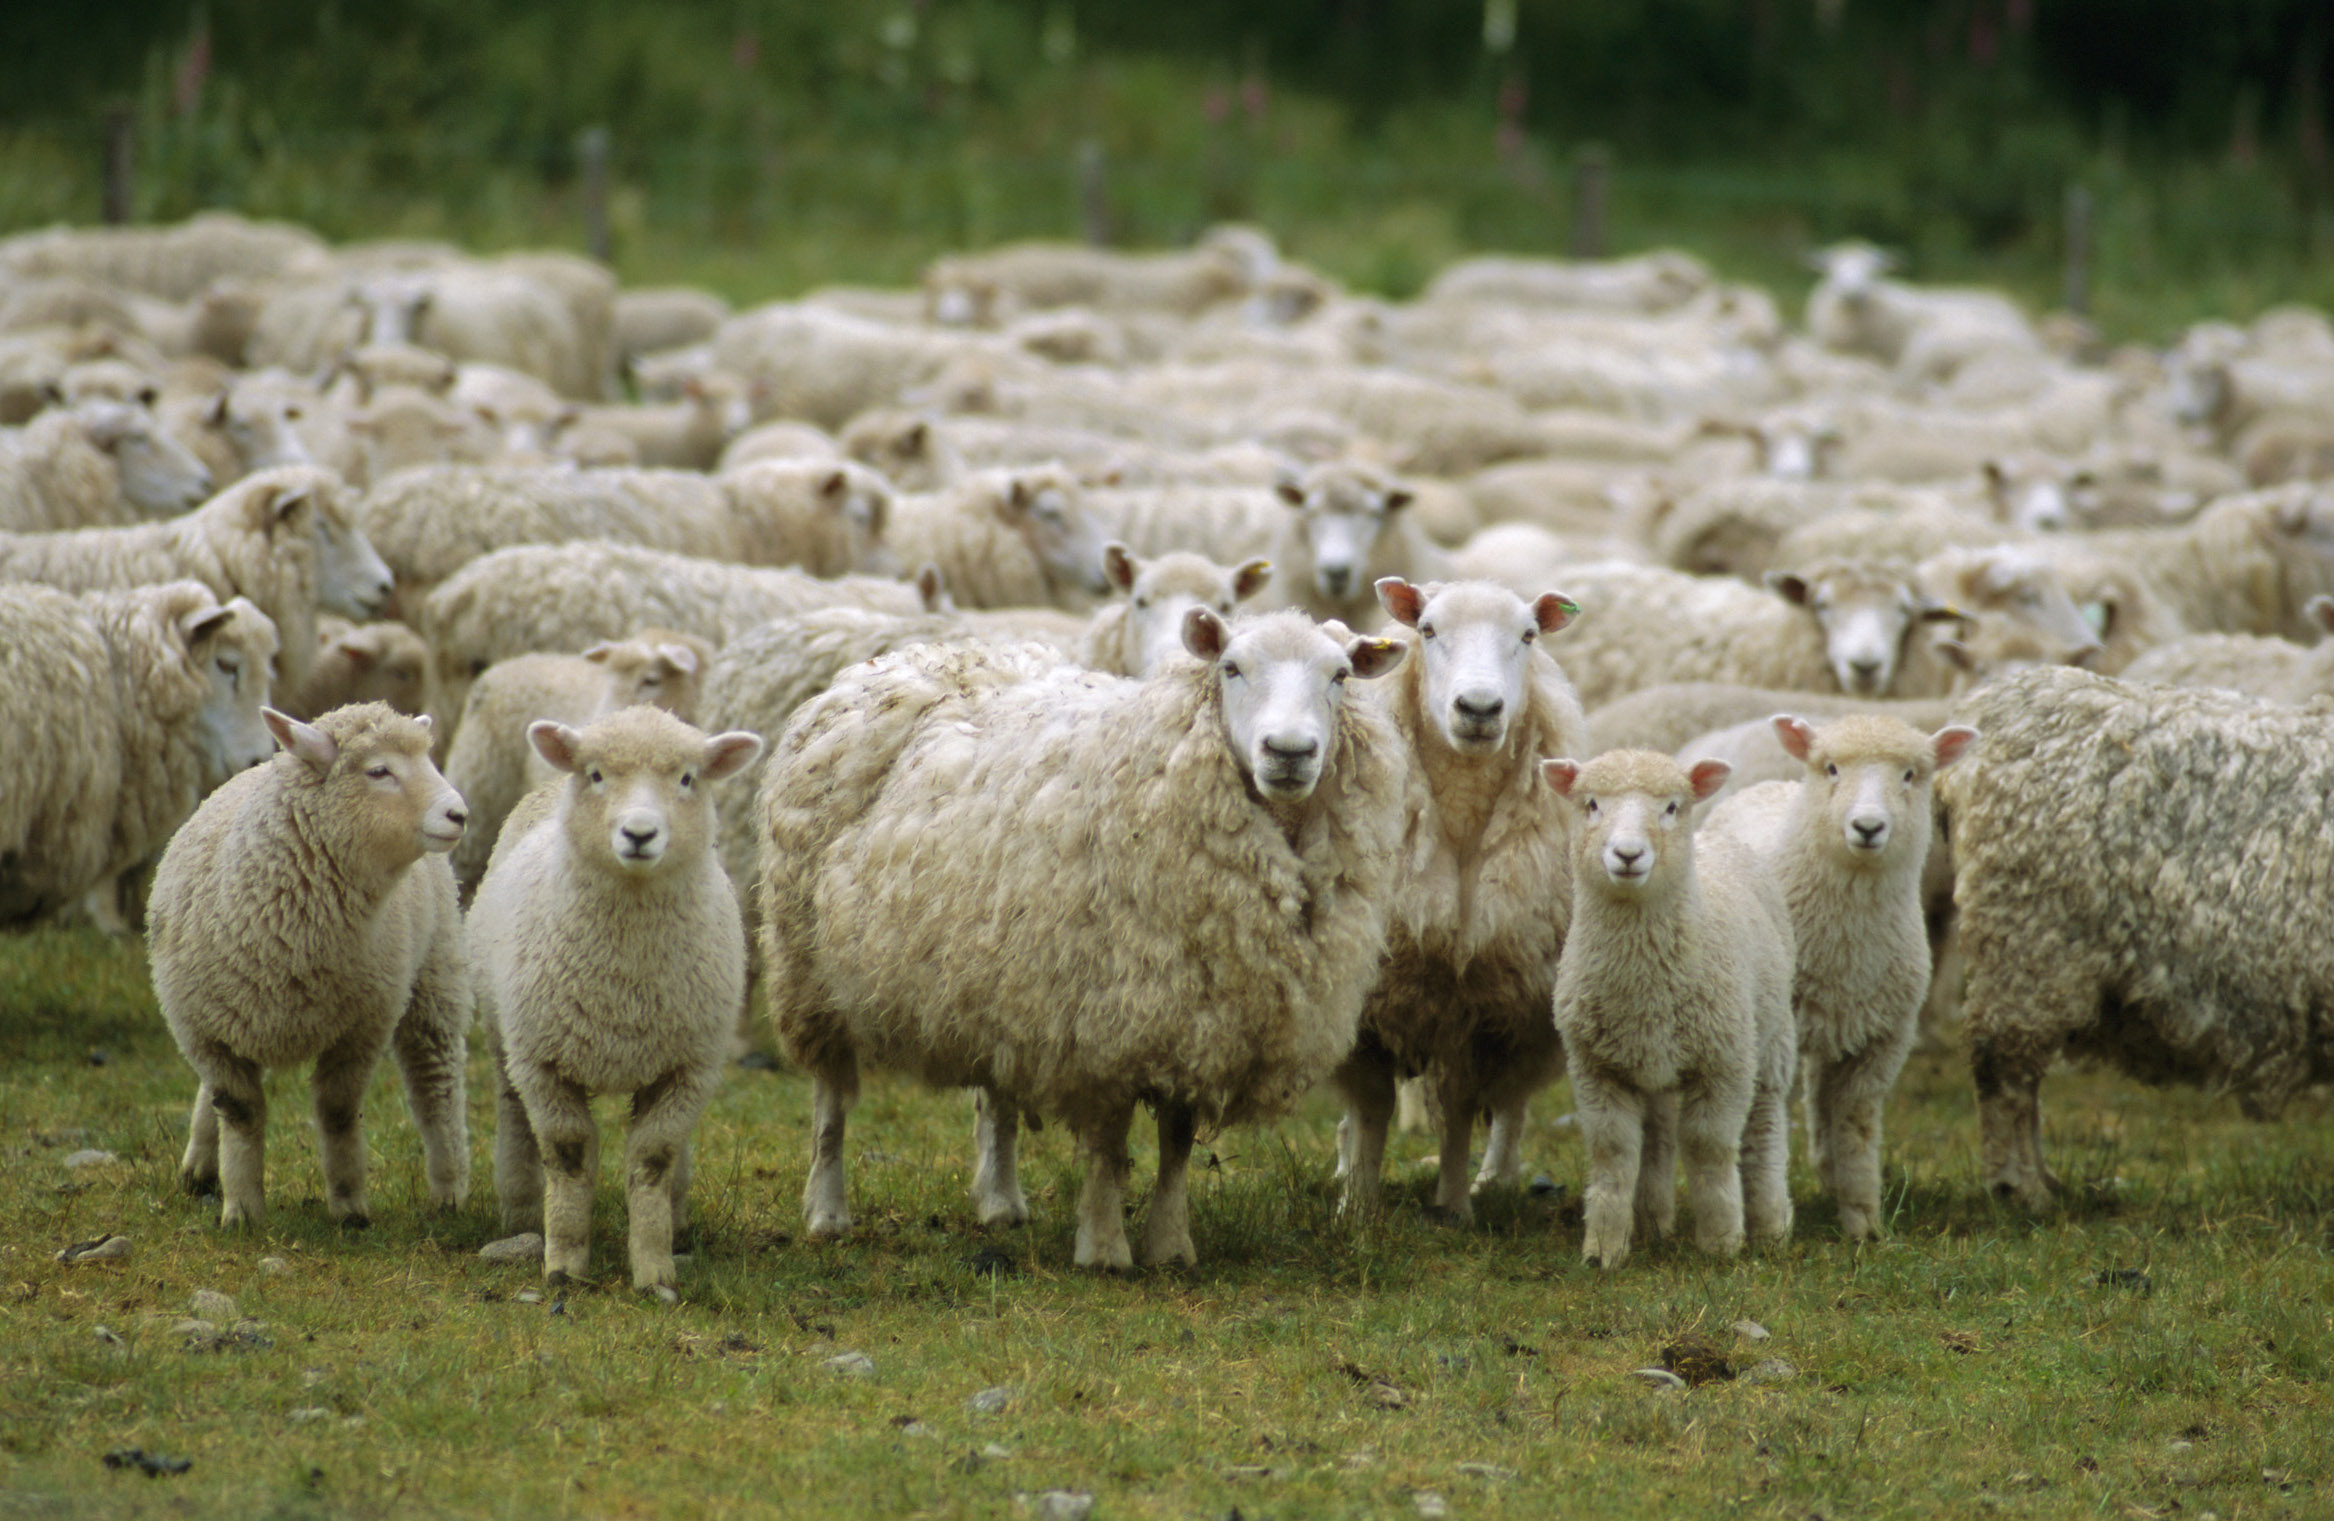 http://img.timeinc.net/time/2009/50_asian_experiences/50_asian_experiences_sheep.jpg